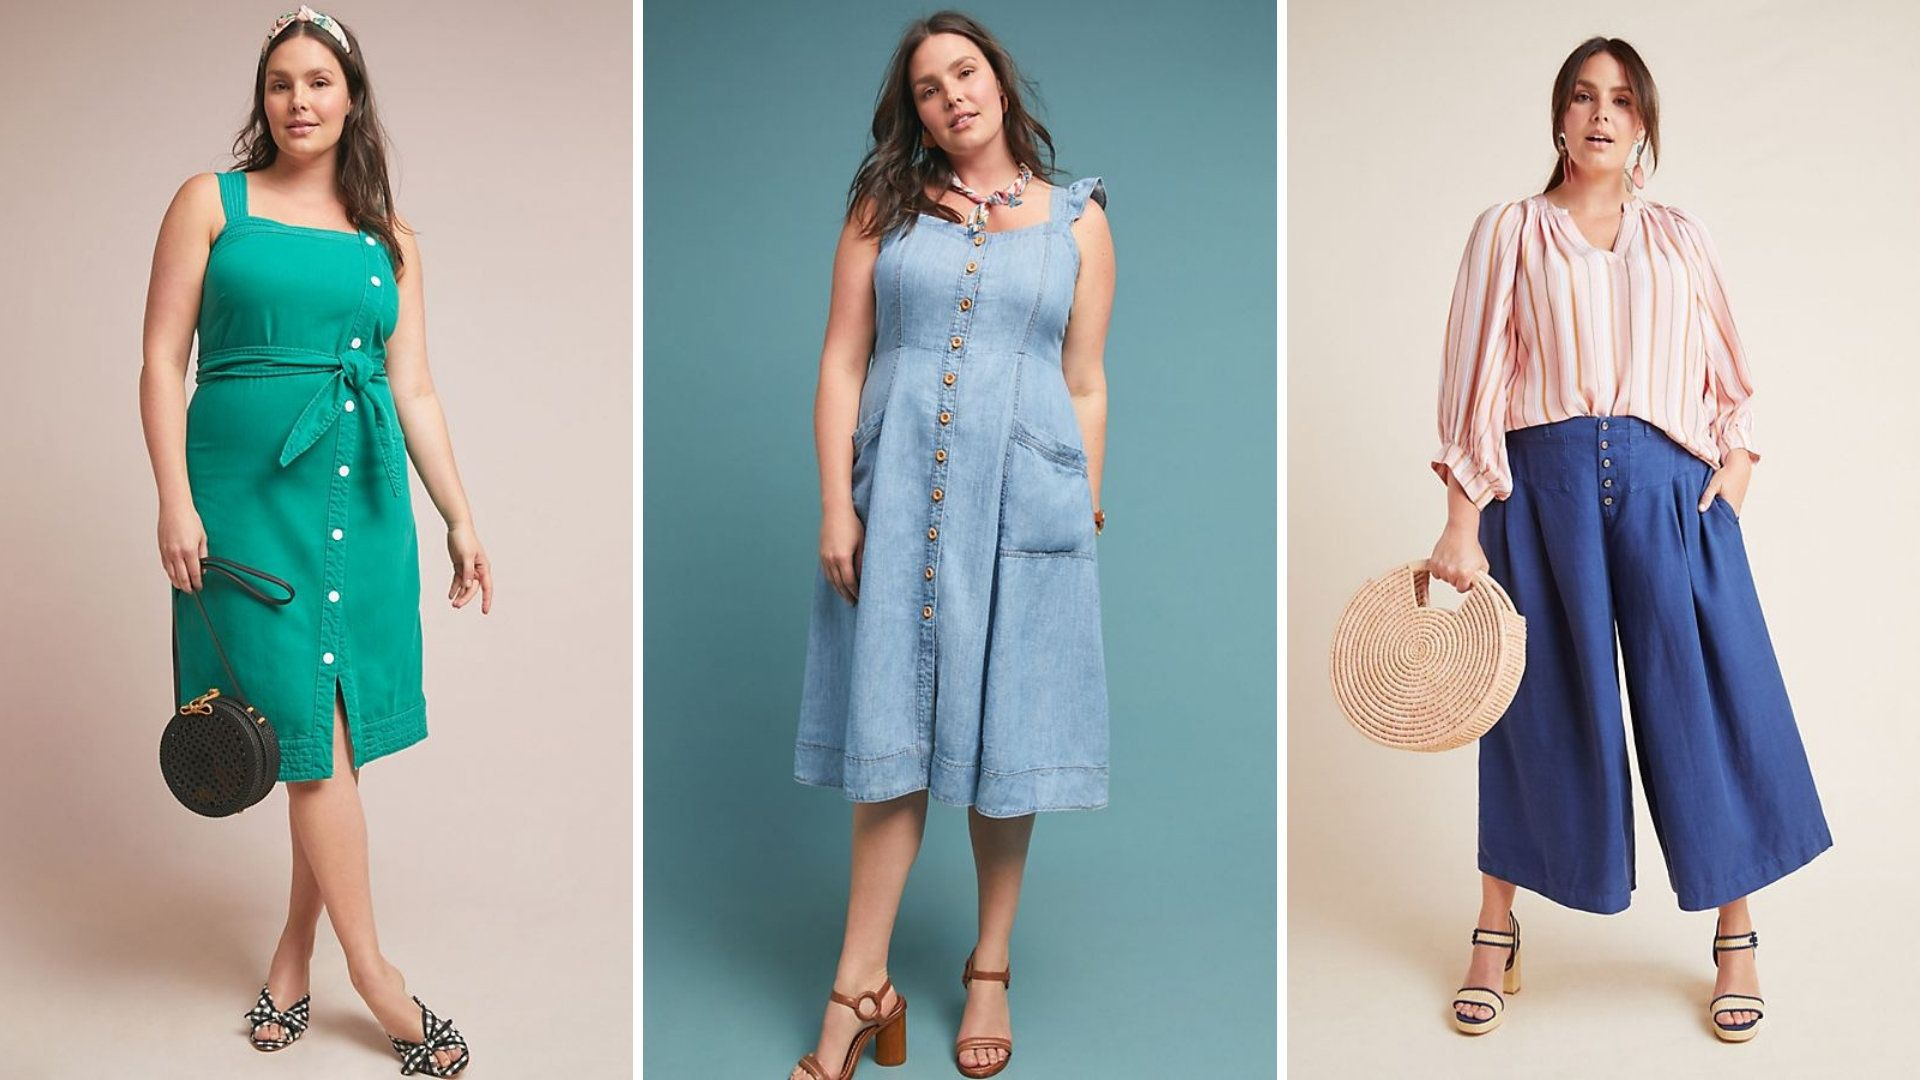 Anthropologie's Plus-Size Collection Is Finally Here